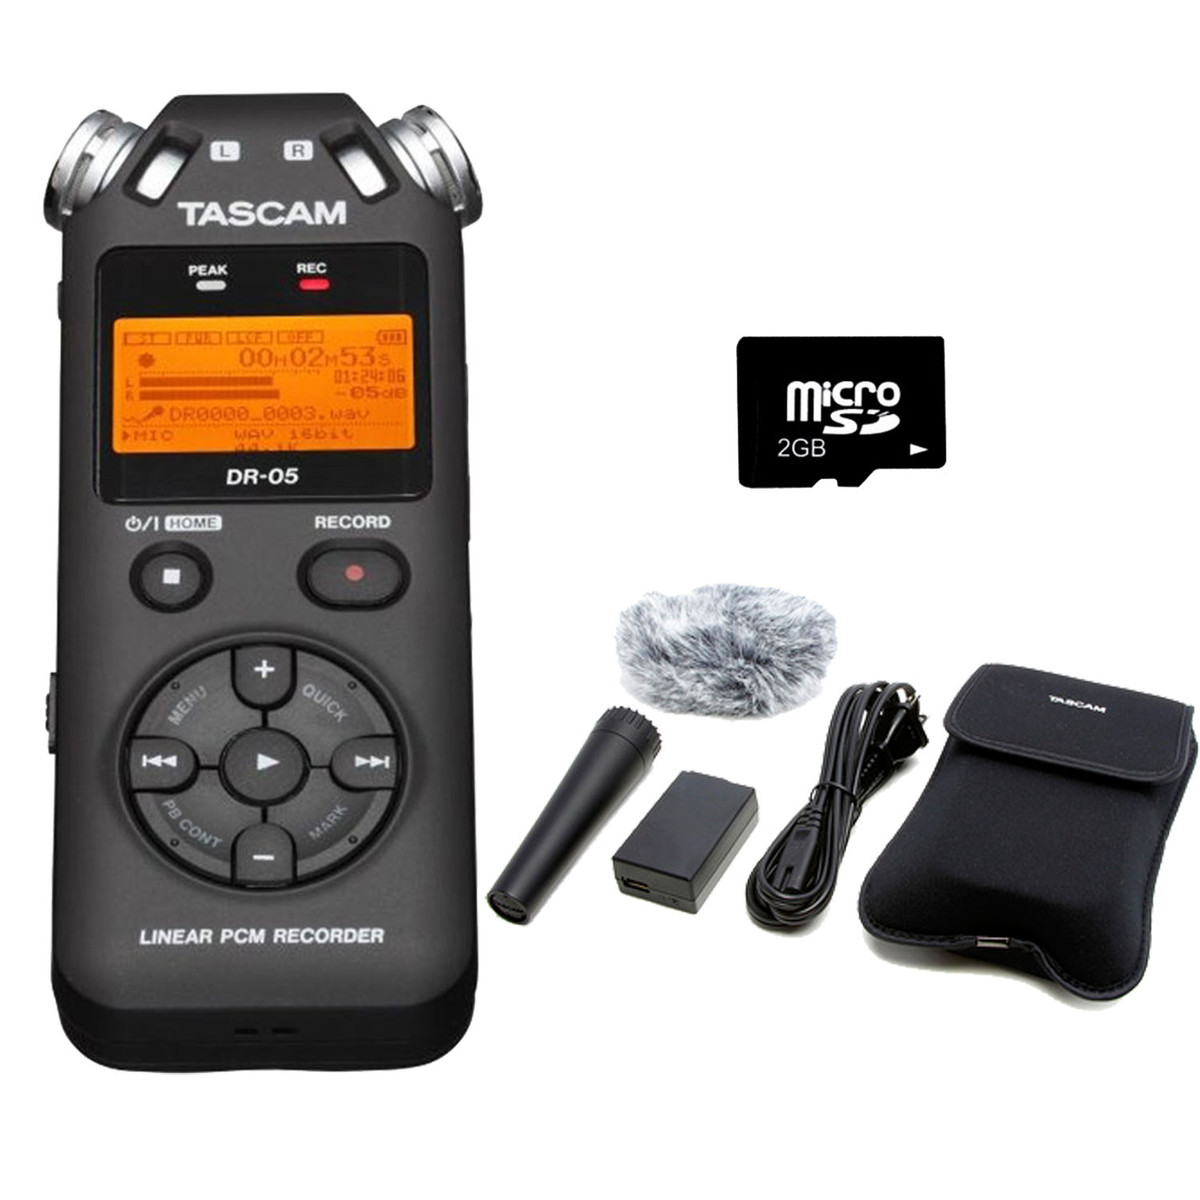 Smothery Tascam Portable Handheld Audio Recorder Bundle Tascam Portable Handheld Audio Recorder Bundle At Tascam Dr 05 Vs Dr 07 Tascam Dr 05 Usb dpreview Tascam Dr 05